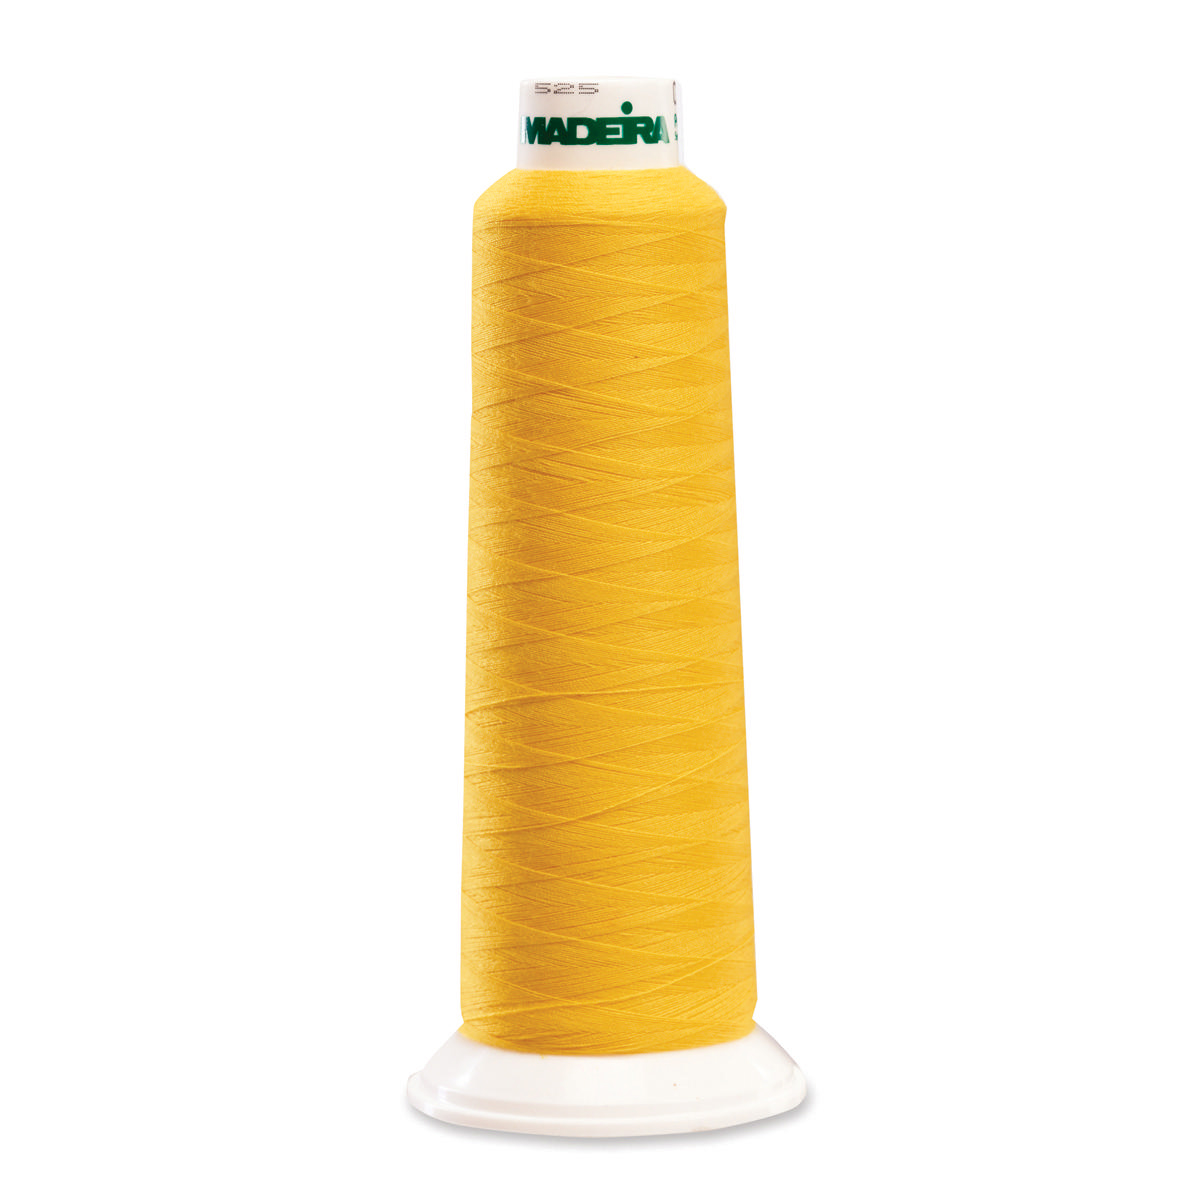 9360 Yellow Poly Serger Thread Madeira Aerolock